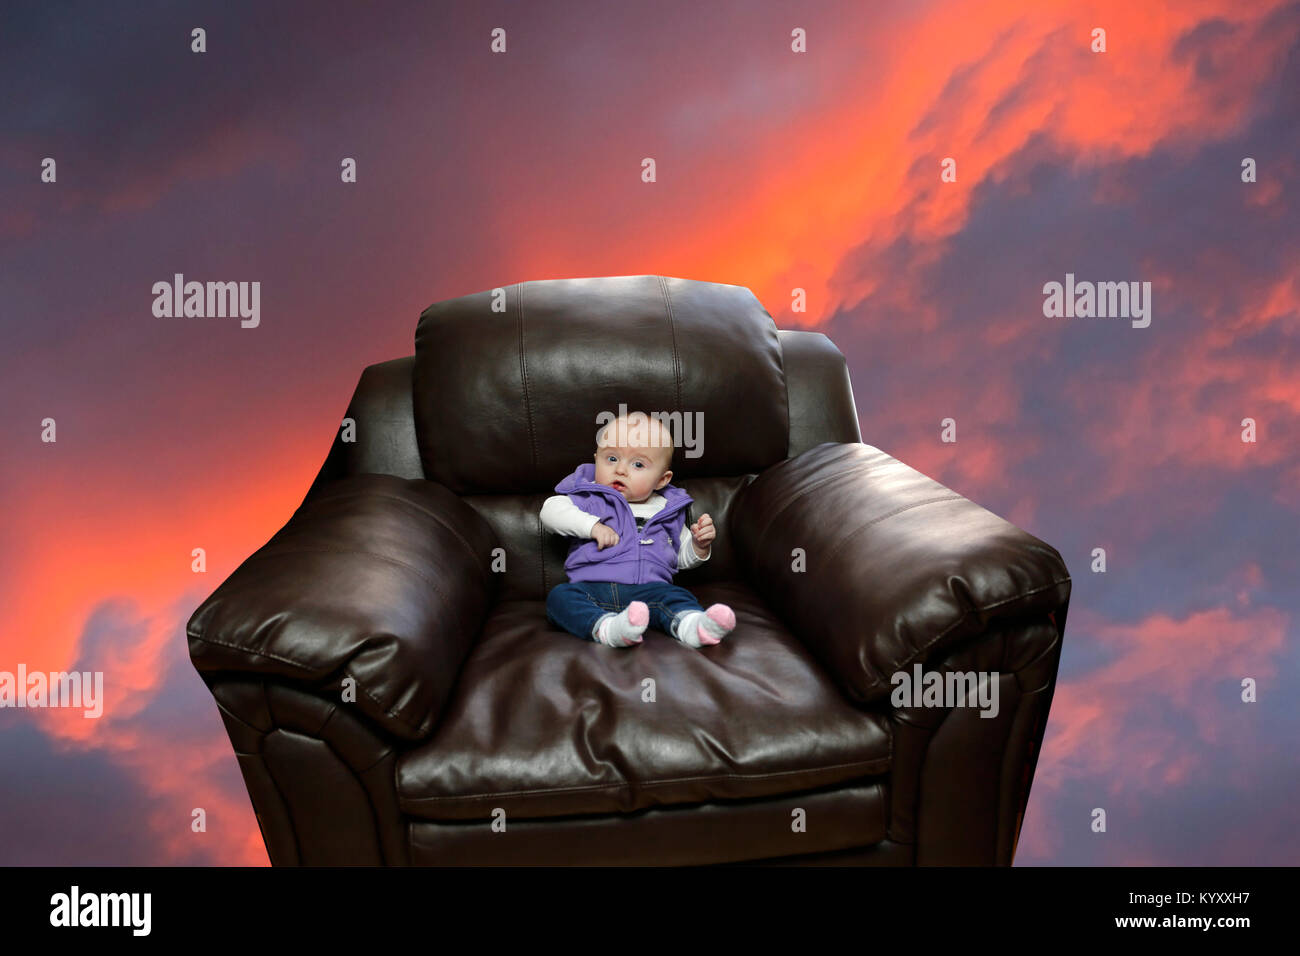 girl child sitting in oversize armchair looking concerned - Stock Image